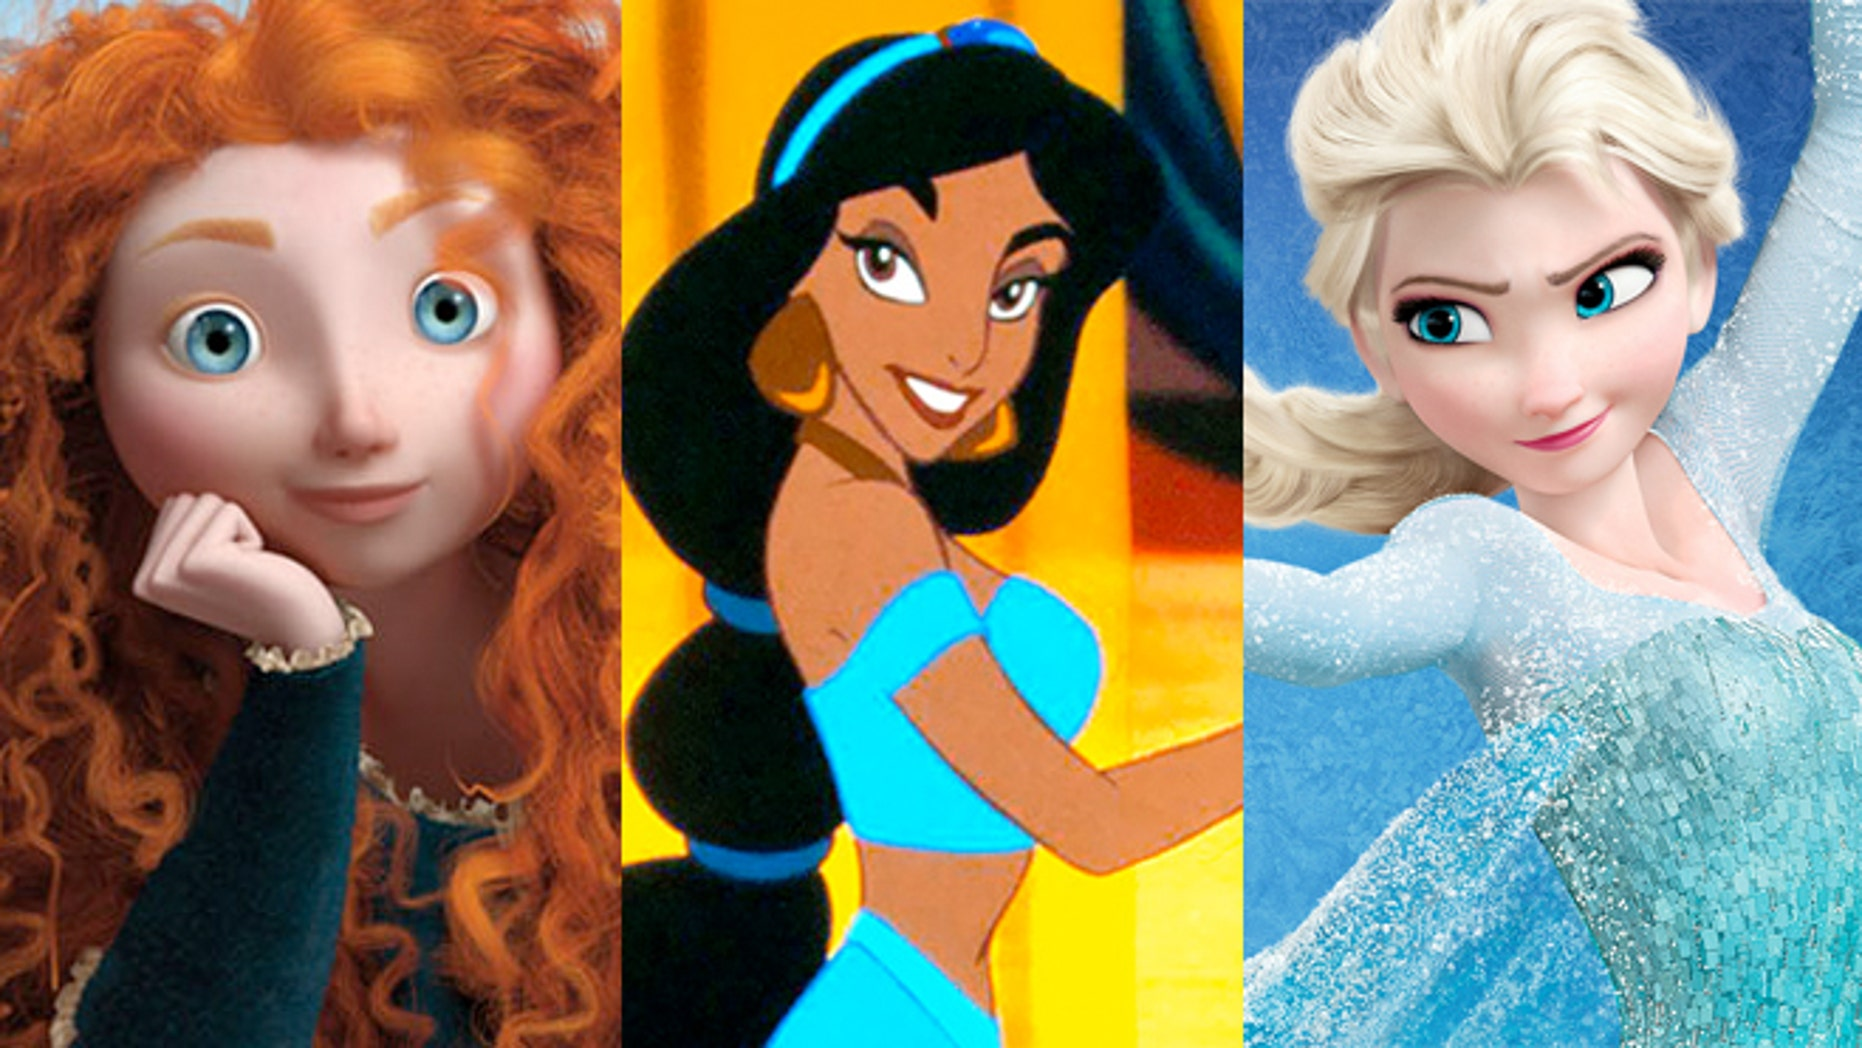 There are lots of Disney princesses, but none with special needs.